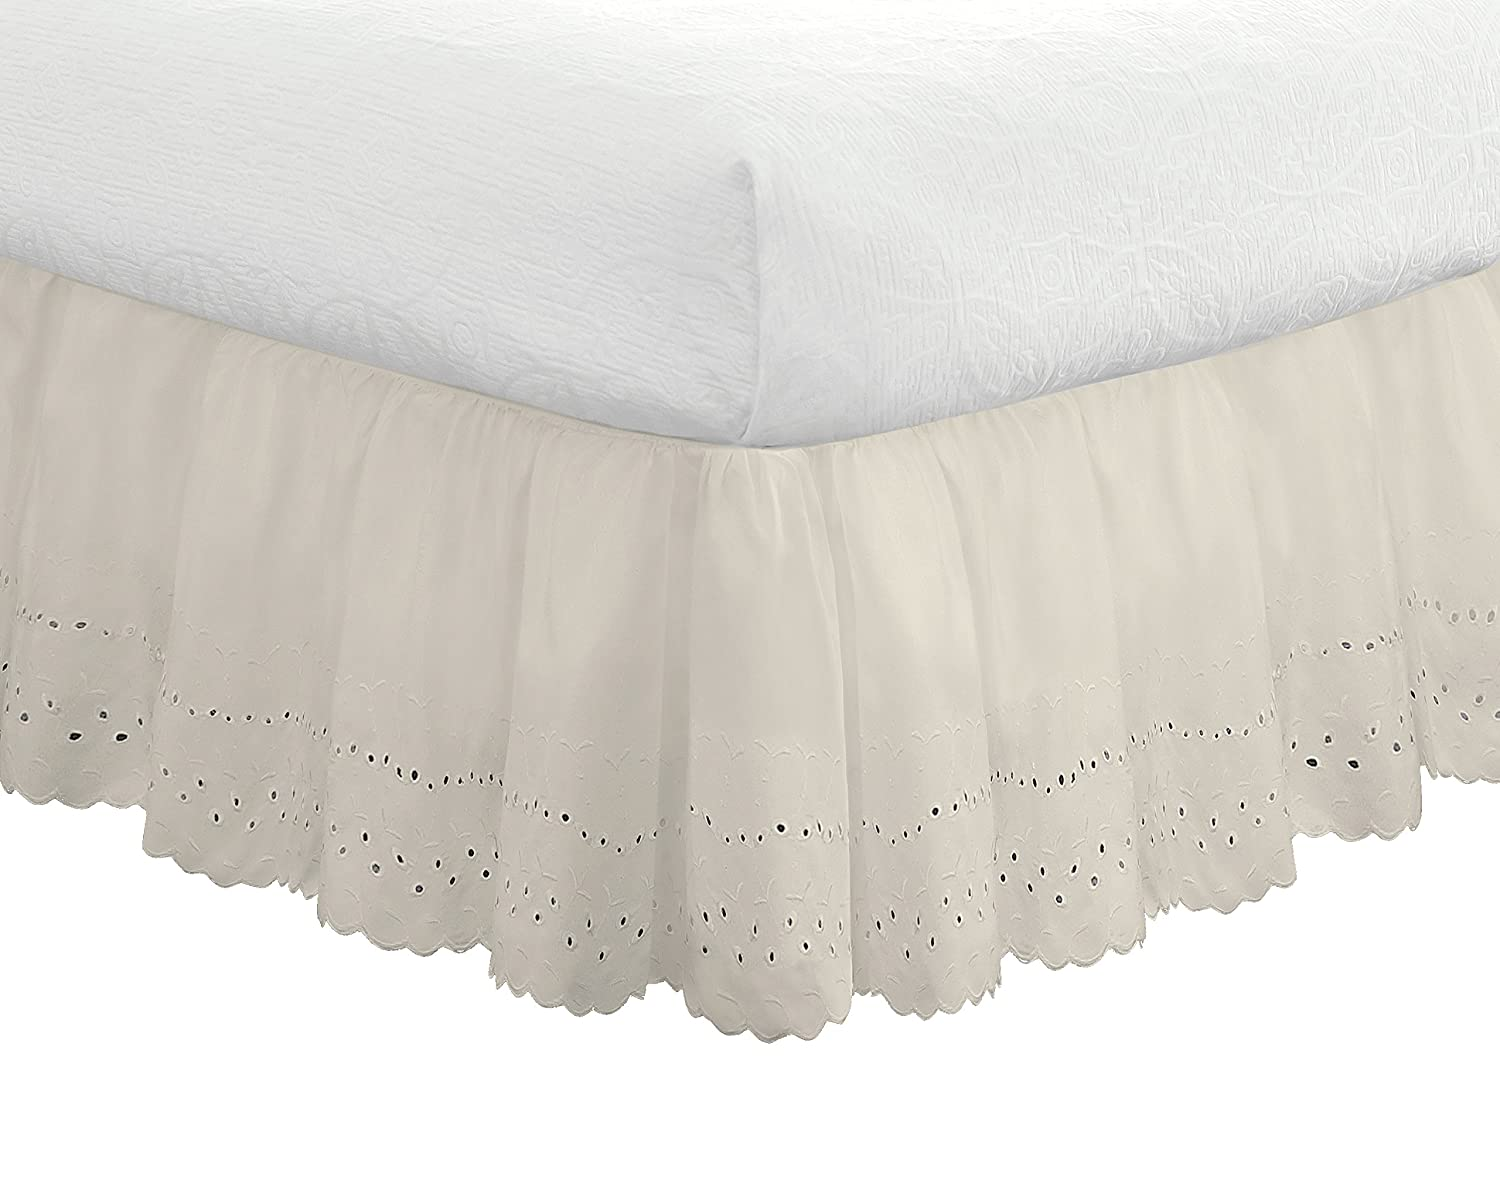 "Fresh Ideas Eyelet Ruffled Bedskirt – Ruffled Bedding with Gathered Styling – 18"" Drop, Twin, White Levinsohn Textile FRE30018WHIT01"